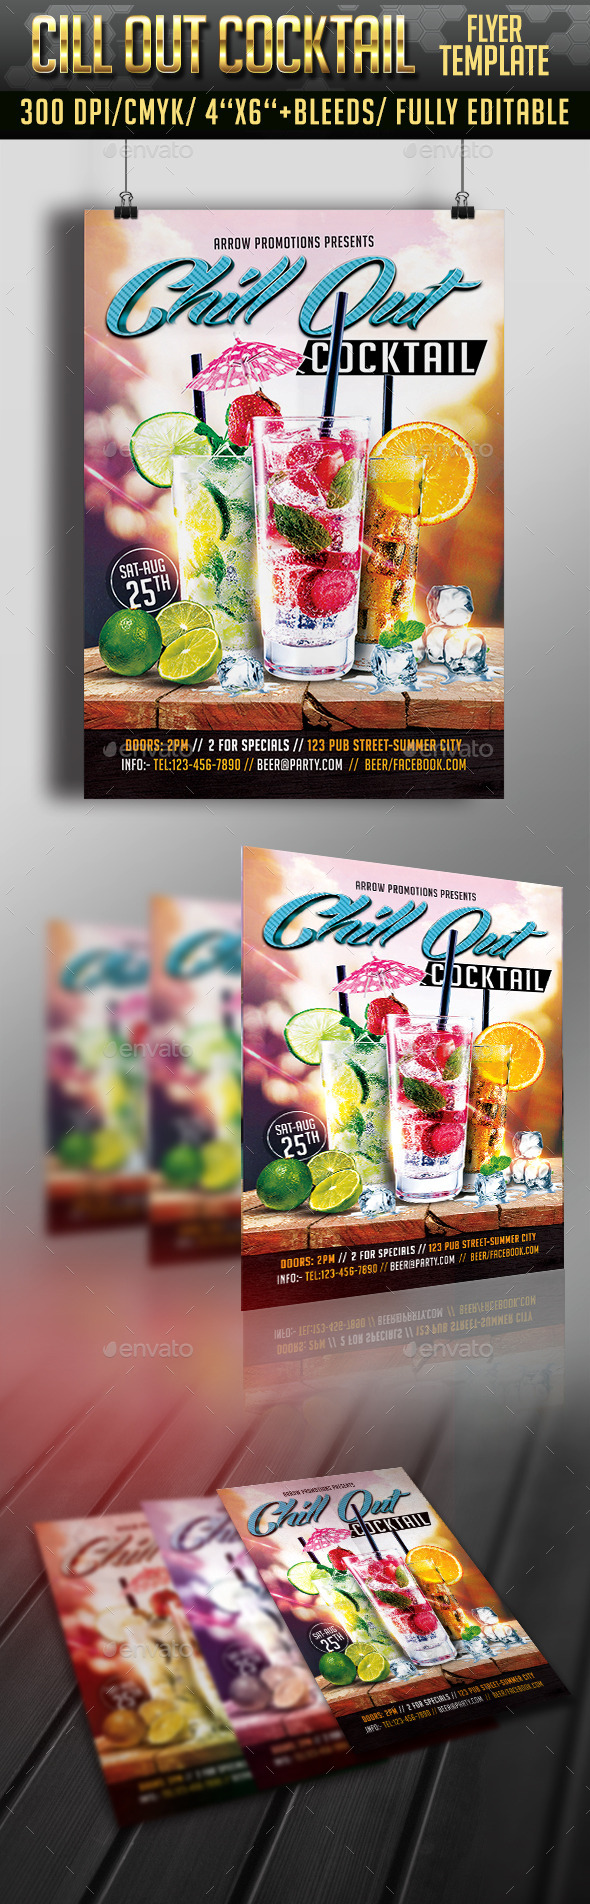 Cocktail Chill Out Flyer - Clubs & Parties Events